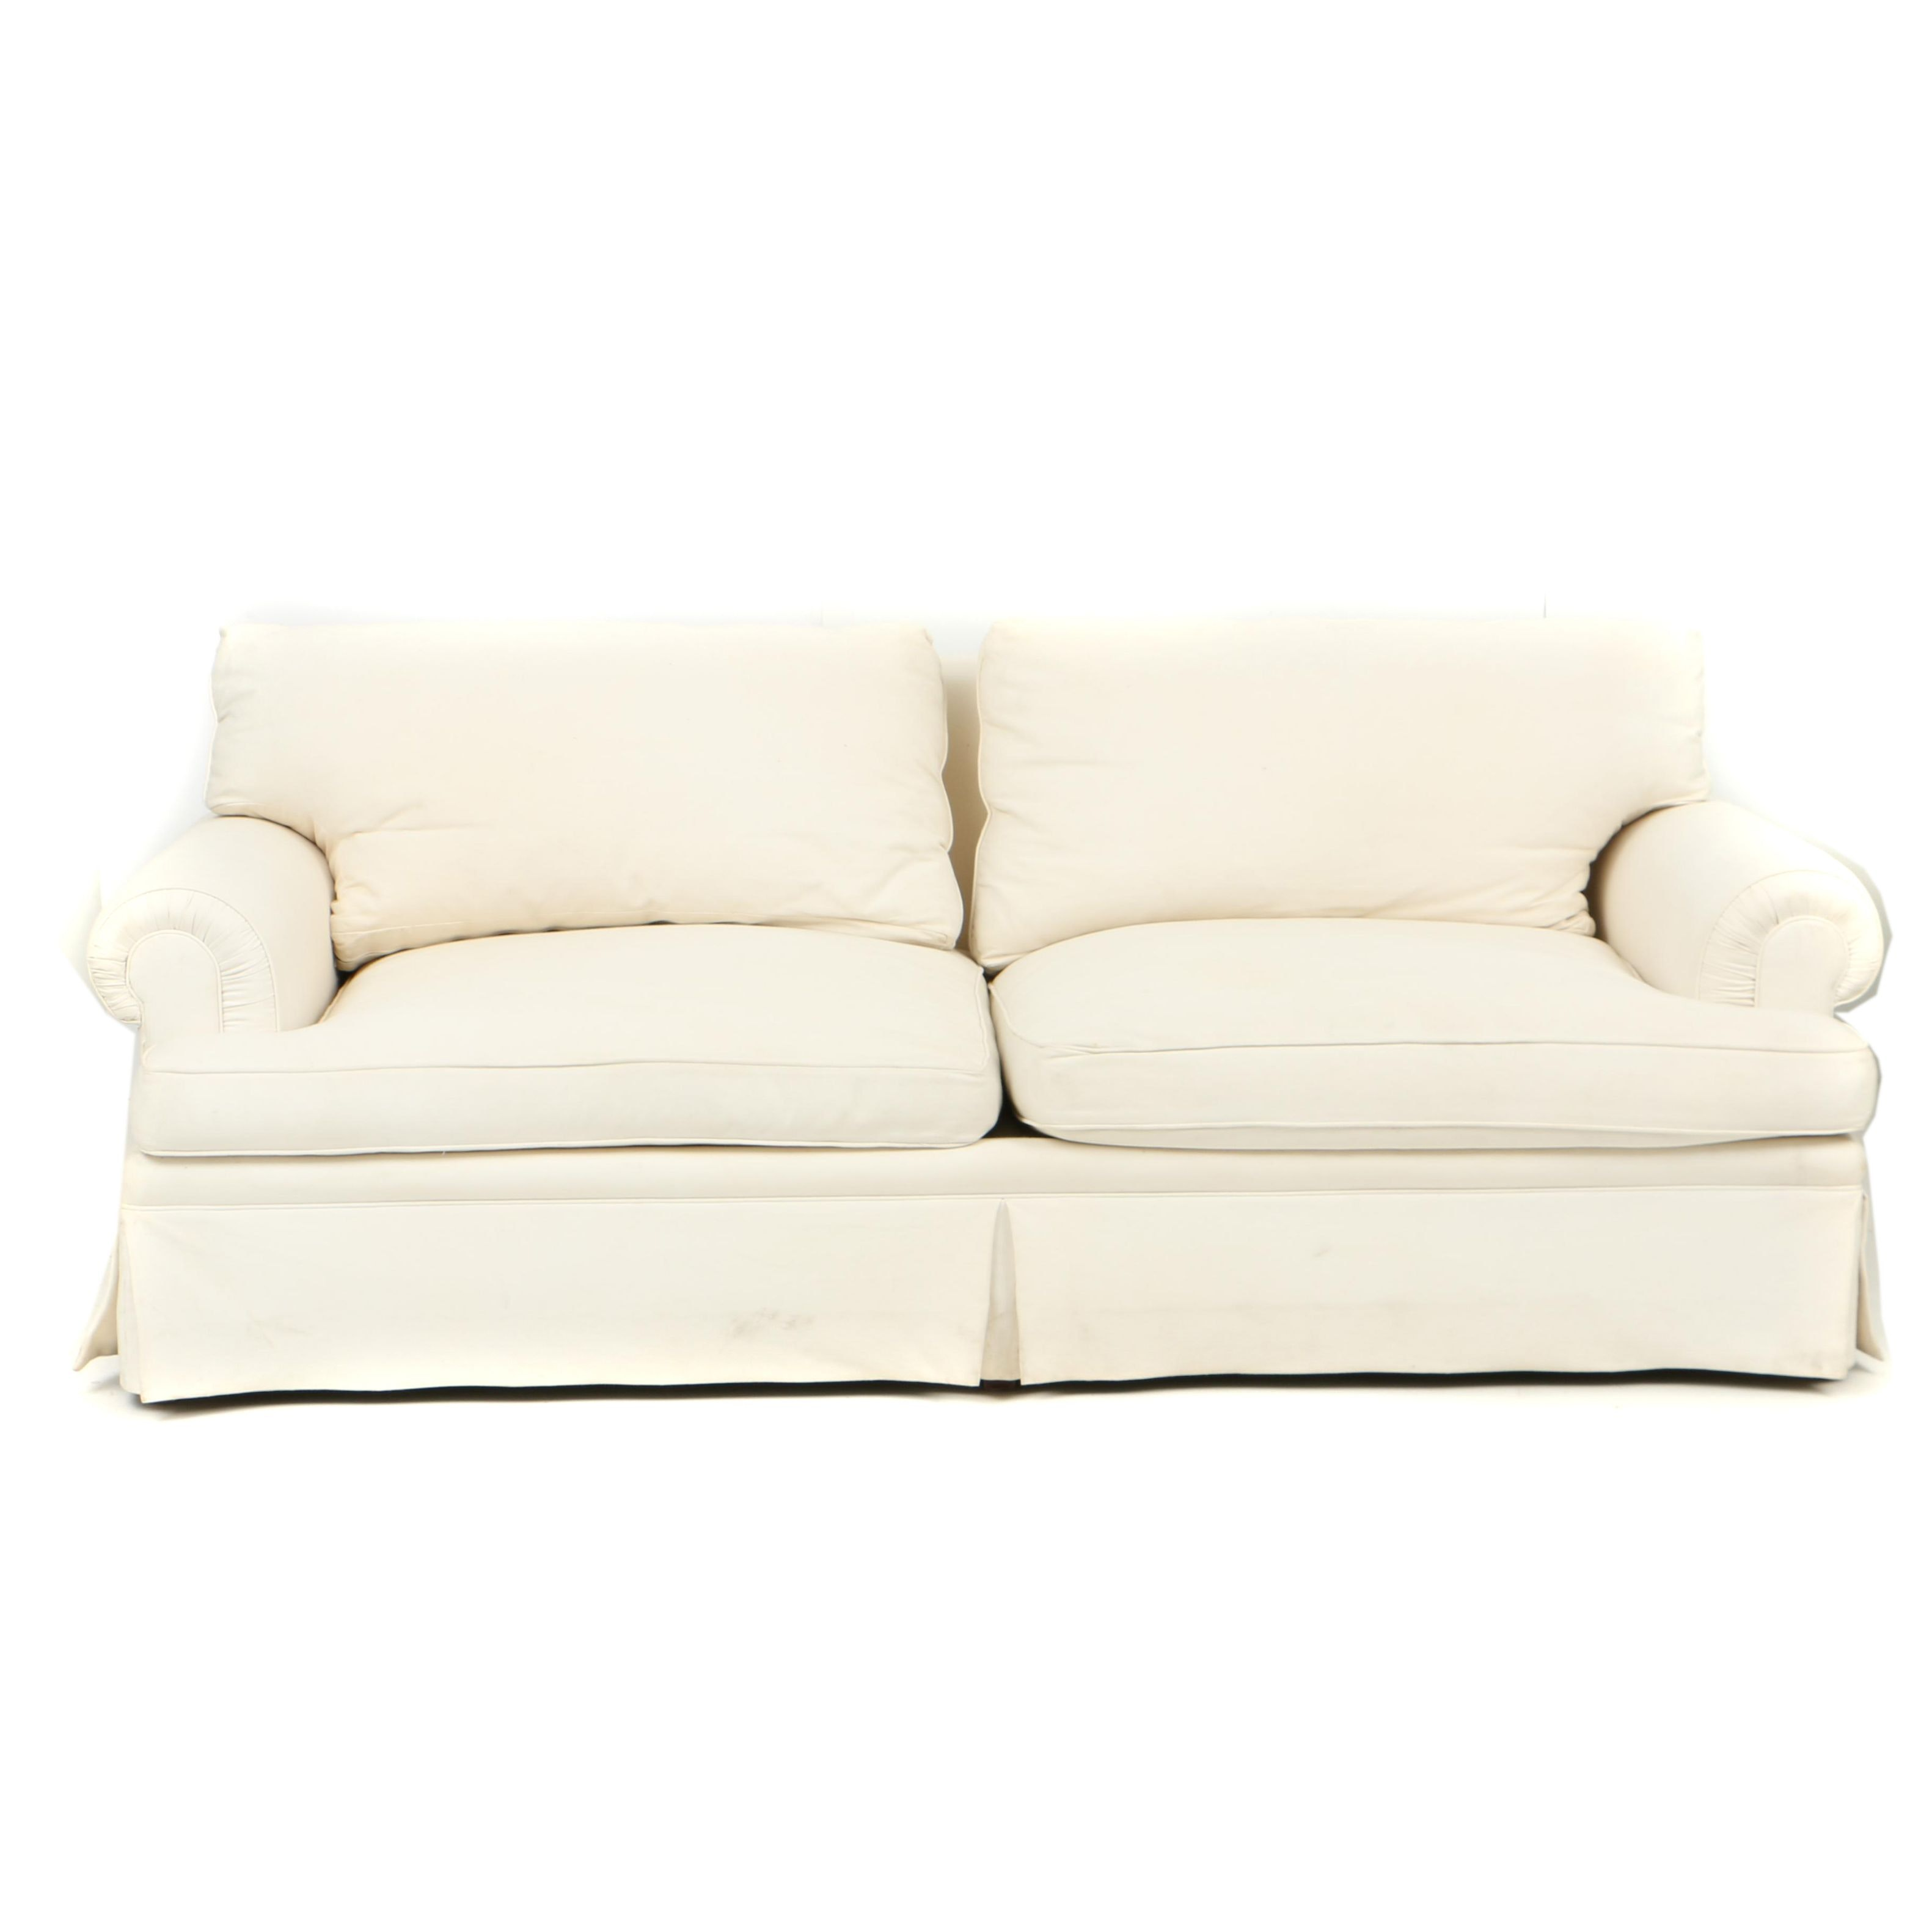 TRS Furniture Inc. White Sofa with Down-Filled Cushions